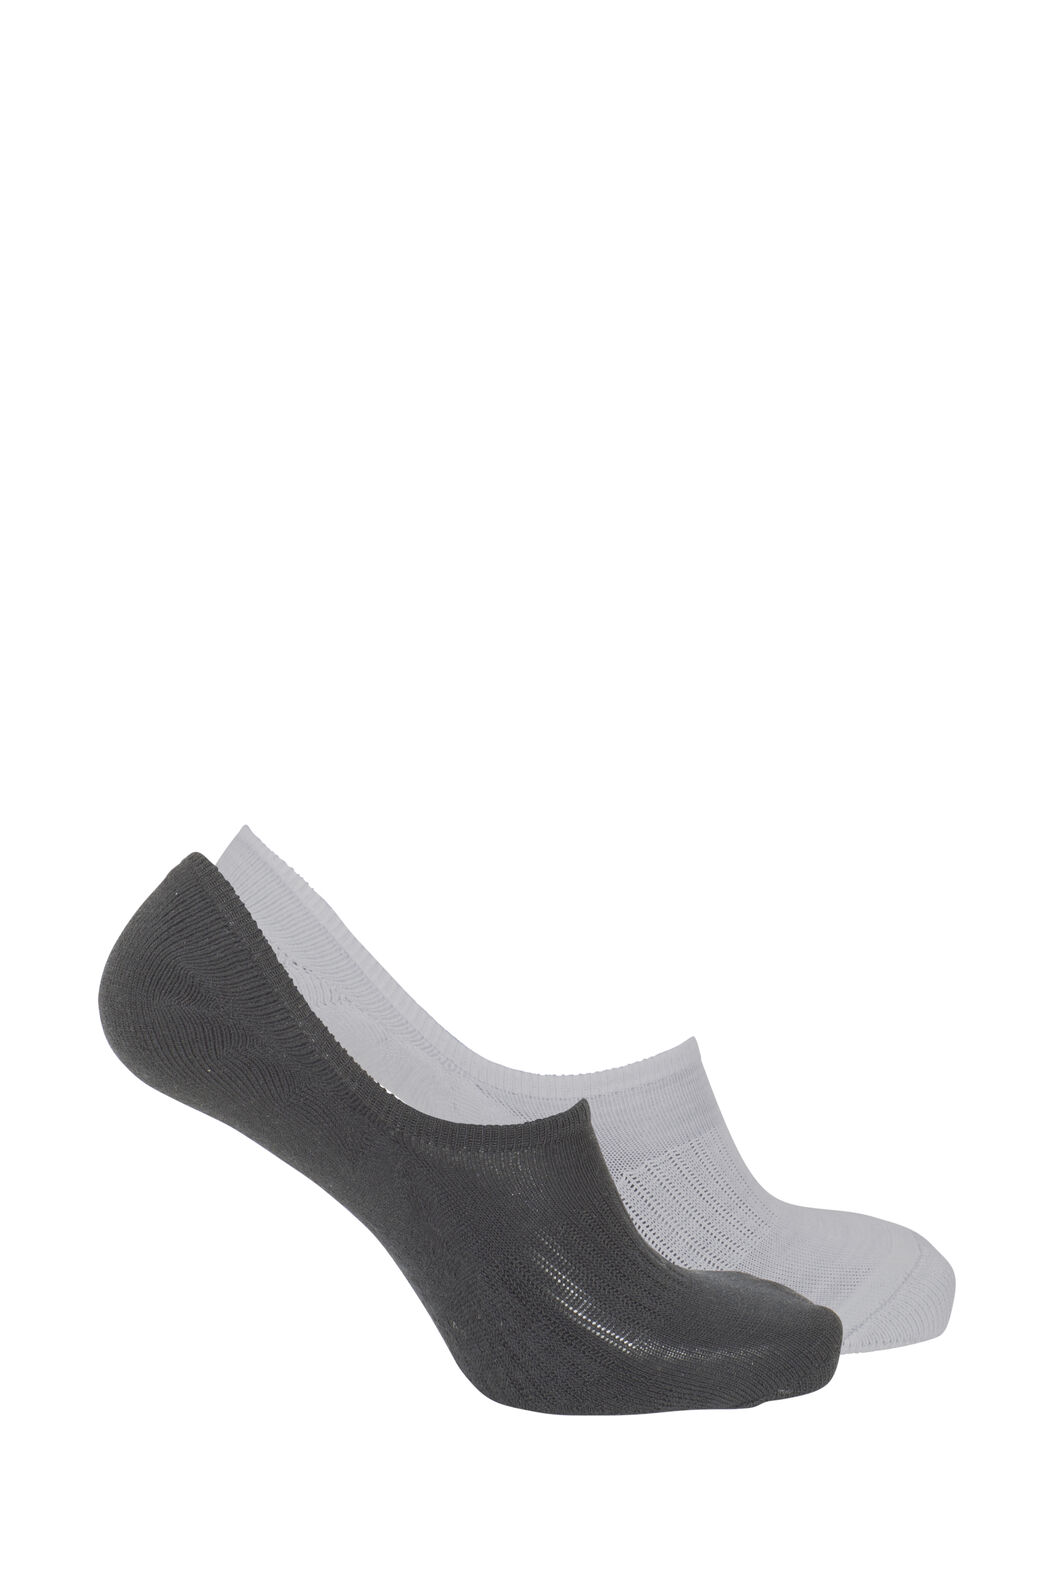 Macpac Invisible Merino Socks (2 Pack), Black/Grey Marle, hi-res